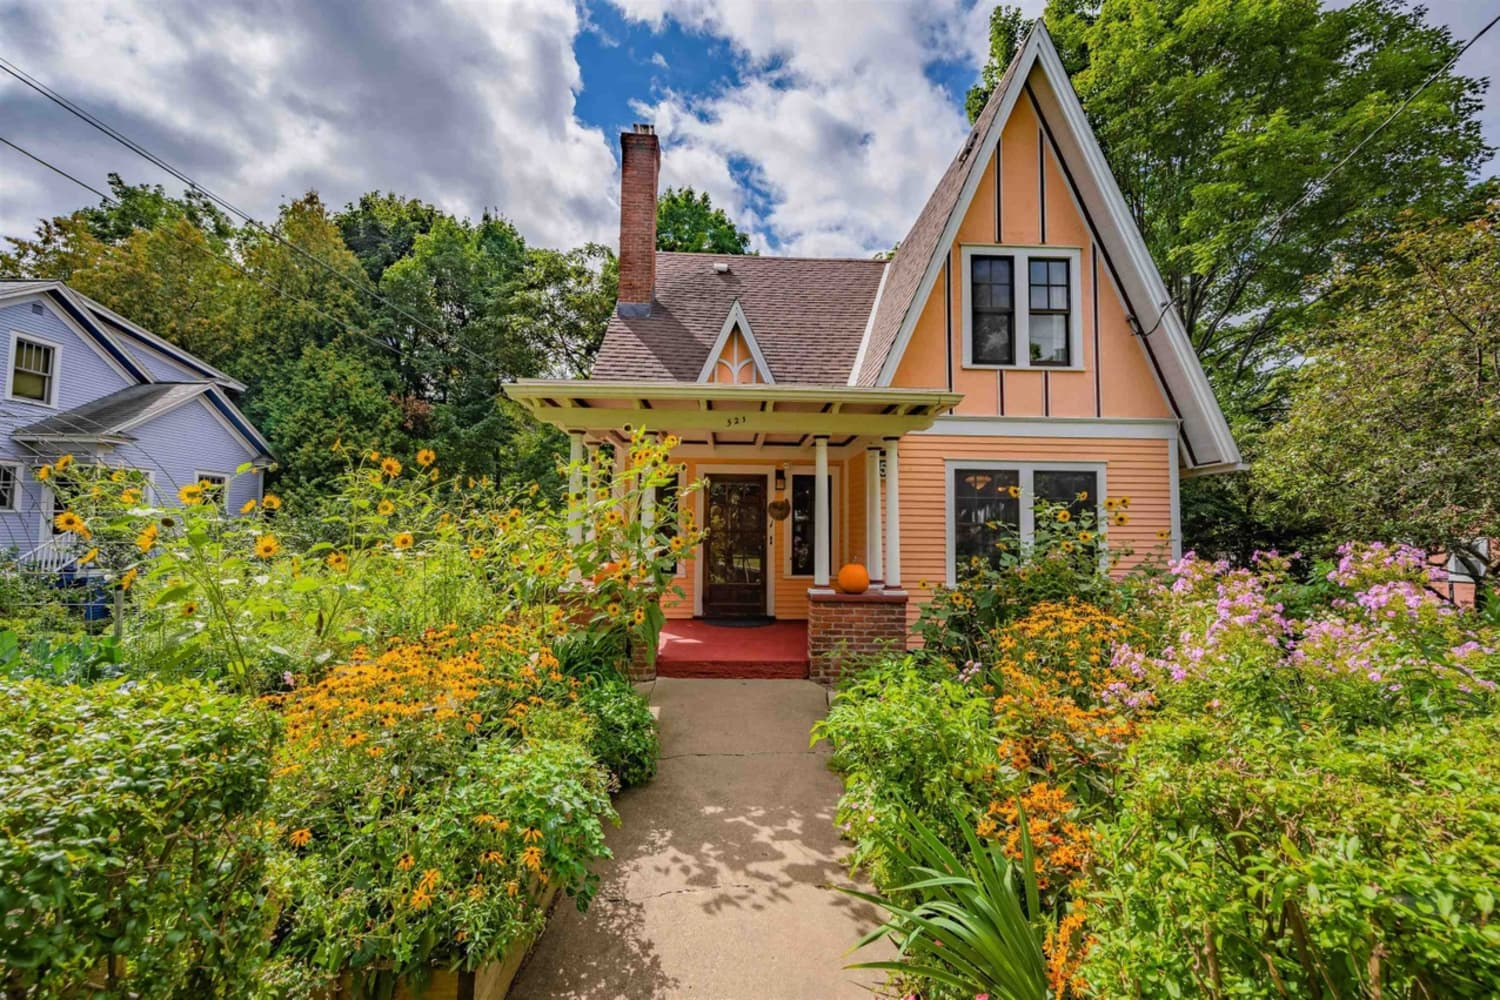 This Sherbet-Colored Cottage for Sale in Vermont Is a Plant Lover's Paradise